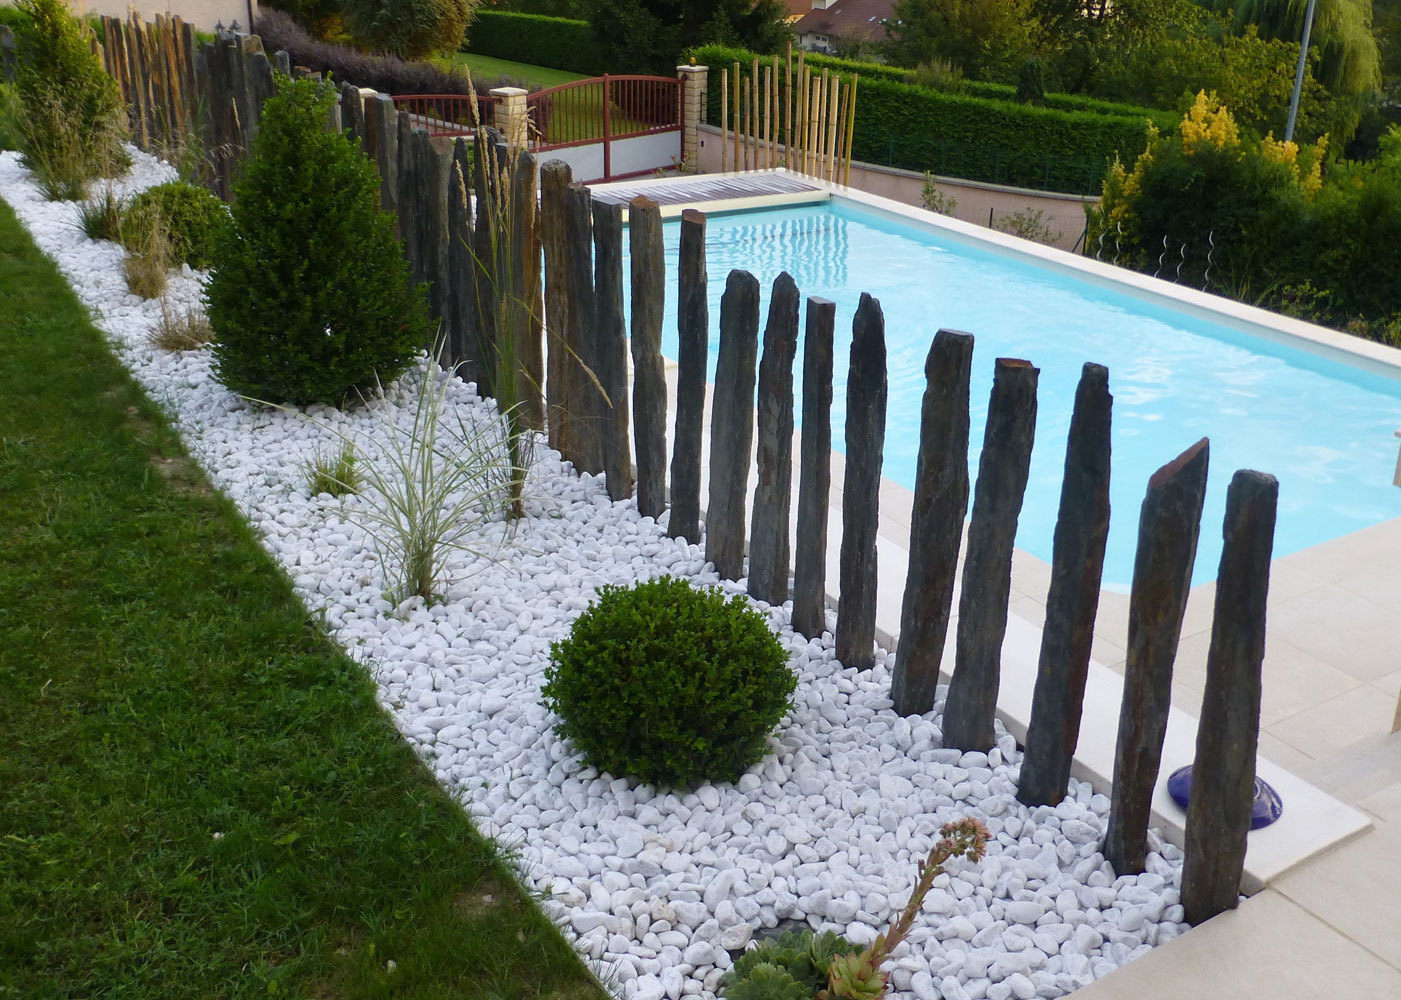 Best deco jardin avec galets blancs ideas design trends for Parterre avec galets blancs